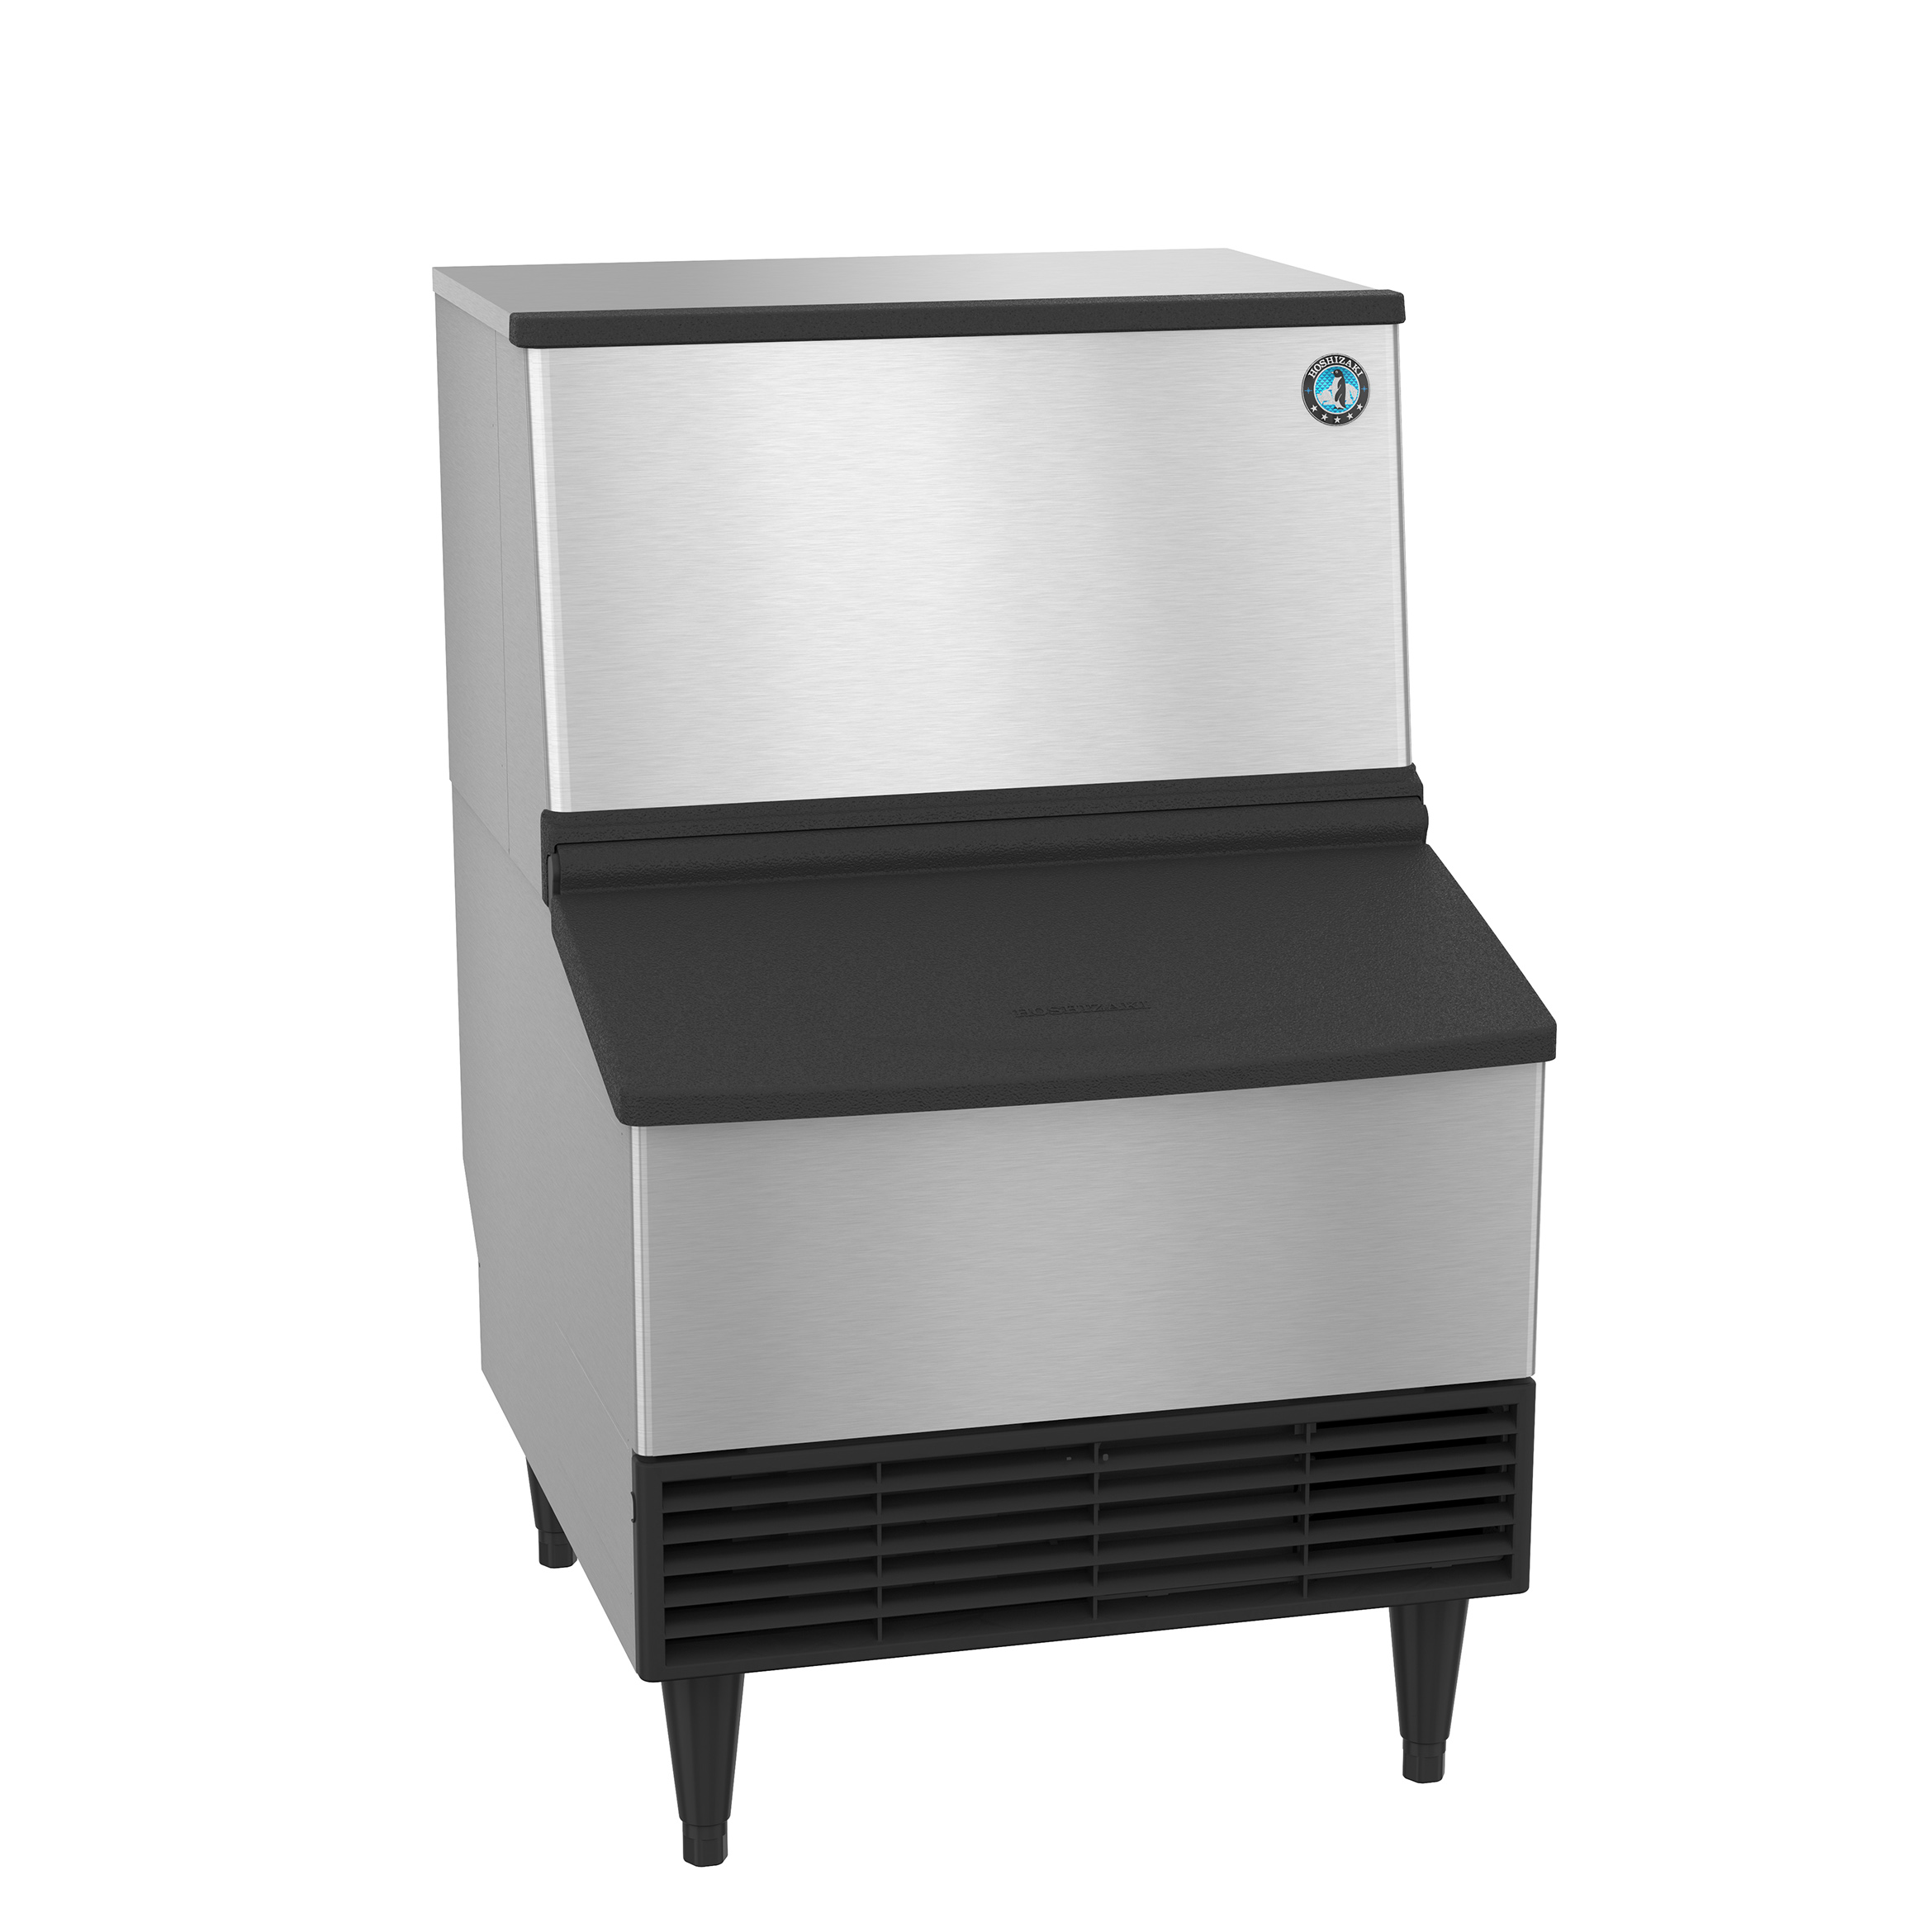 Hoshizaki KM-230BAJ ice maker with bin, cube-style